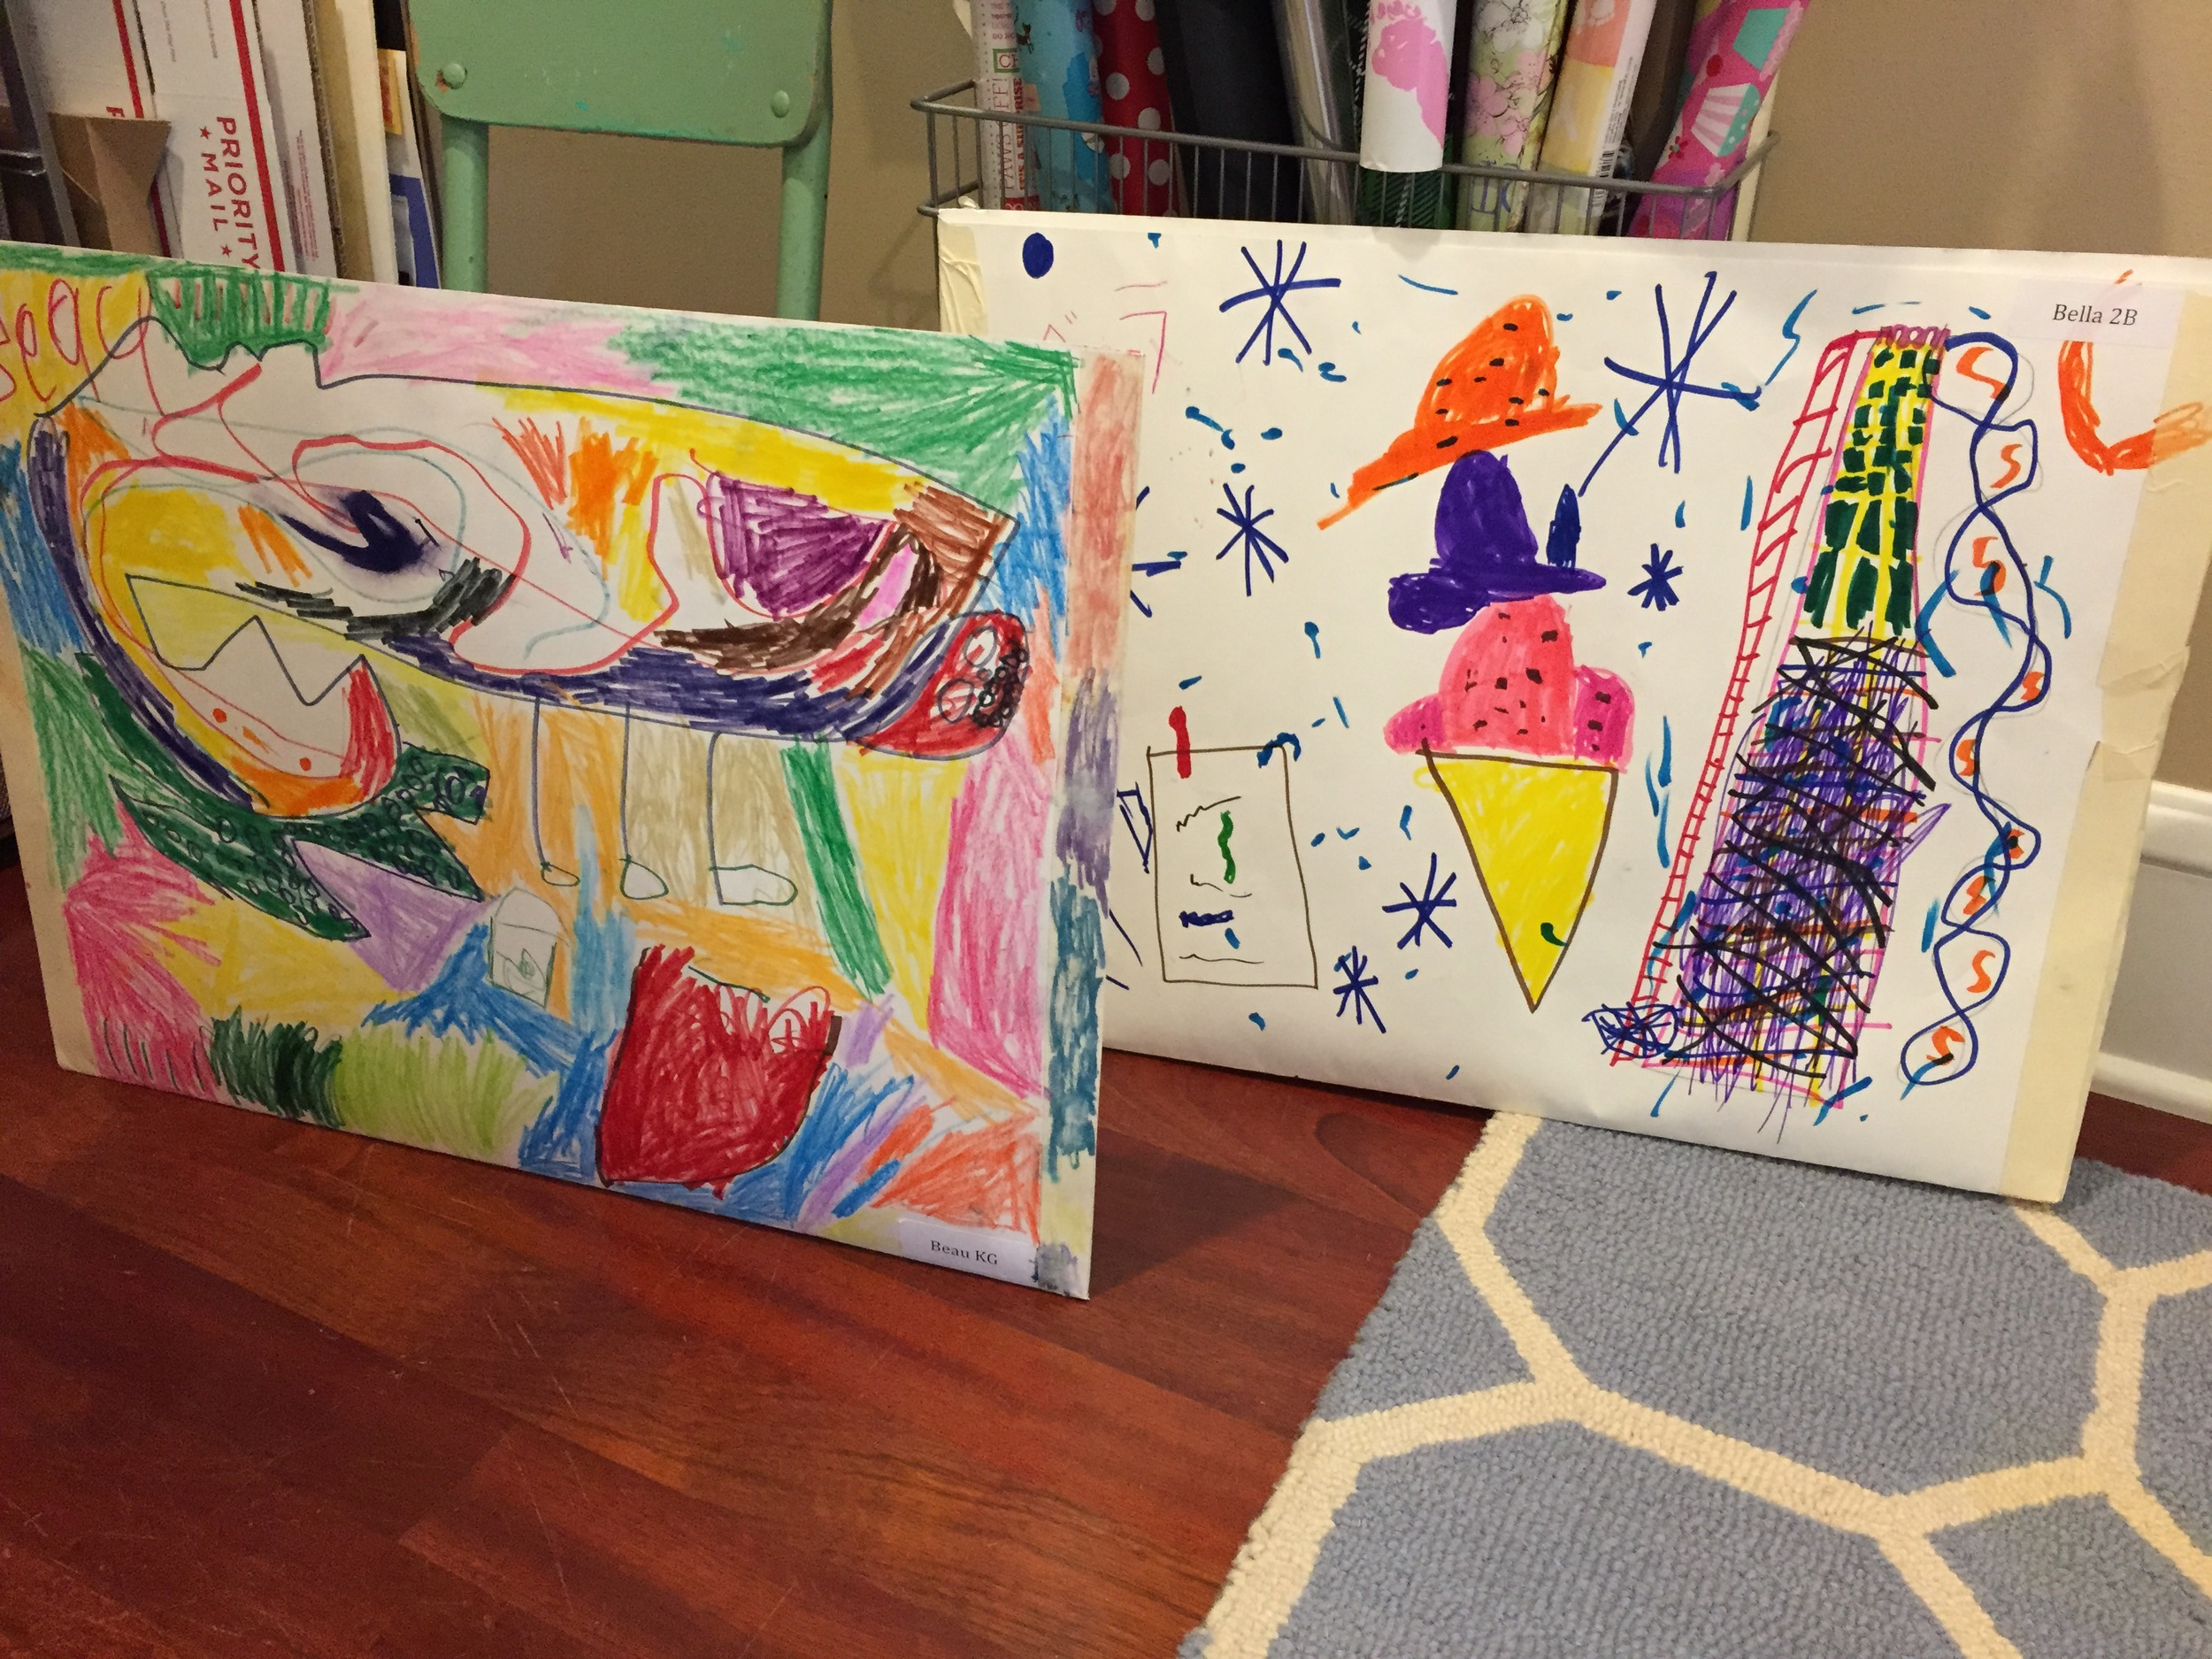 These two pockets came home with my kids at the end of the school year (June 2015). The teachers took two poster boards and taped them together to create a big portfolio to hold artwork throughout the year. I will use these same pockets to collect artwork this whole school year 2015-2016. When it's time to send the grandparents their art books in September 2016, I will take apart these two pockets, which equals 4 poster boards in total and use 3 out of the 4 poster boards. Fold each in half and use them as envelopes for the art books. One poster board remains for next year. Recycling at it's finest.